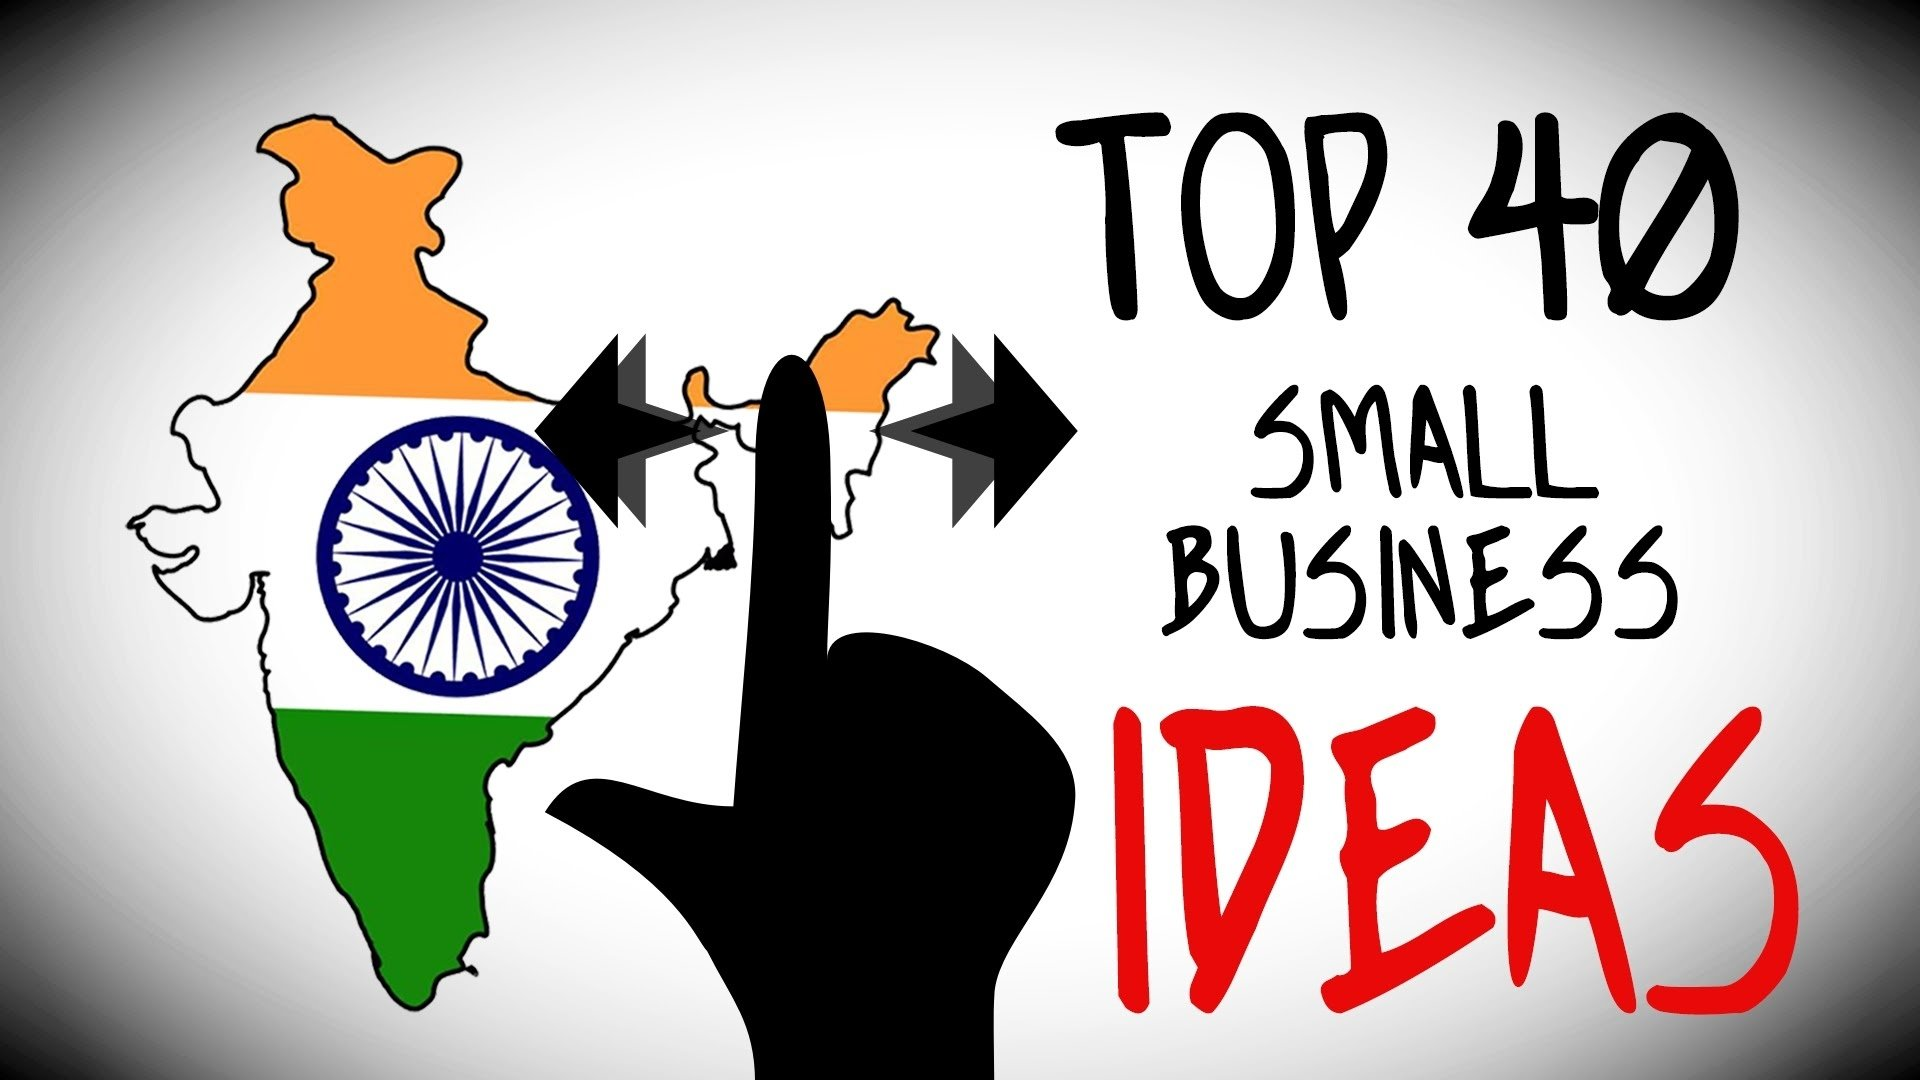 10 Spectacular Small Business Ideas In India top 40 small business ideas in india for starting your own business 15 2021